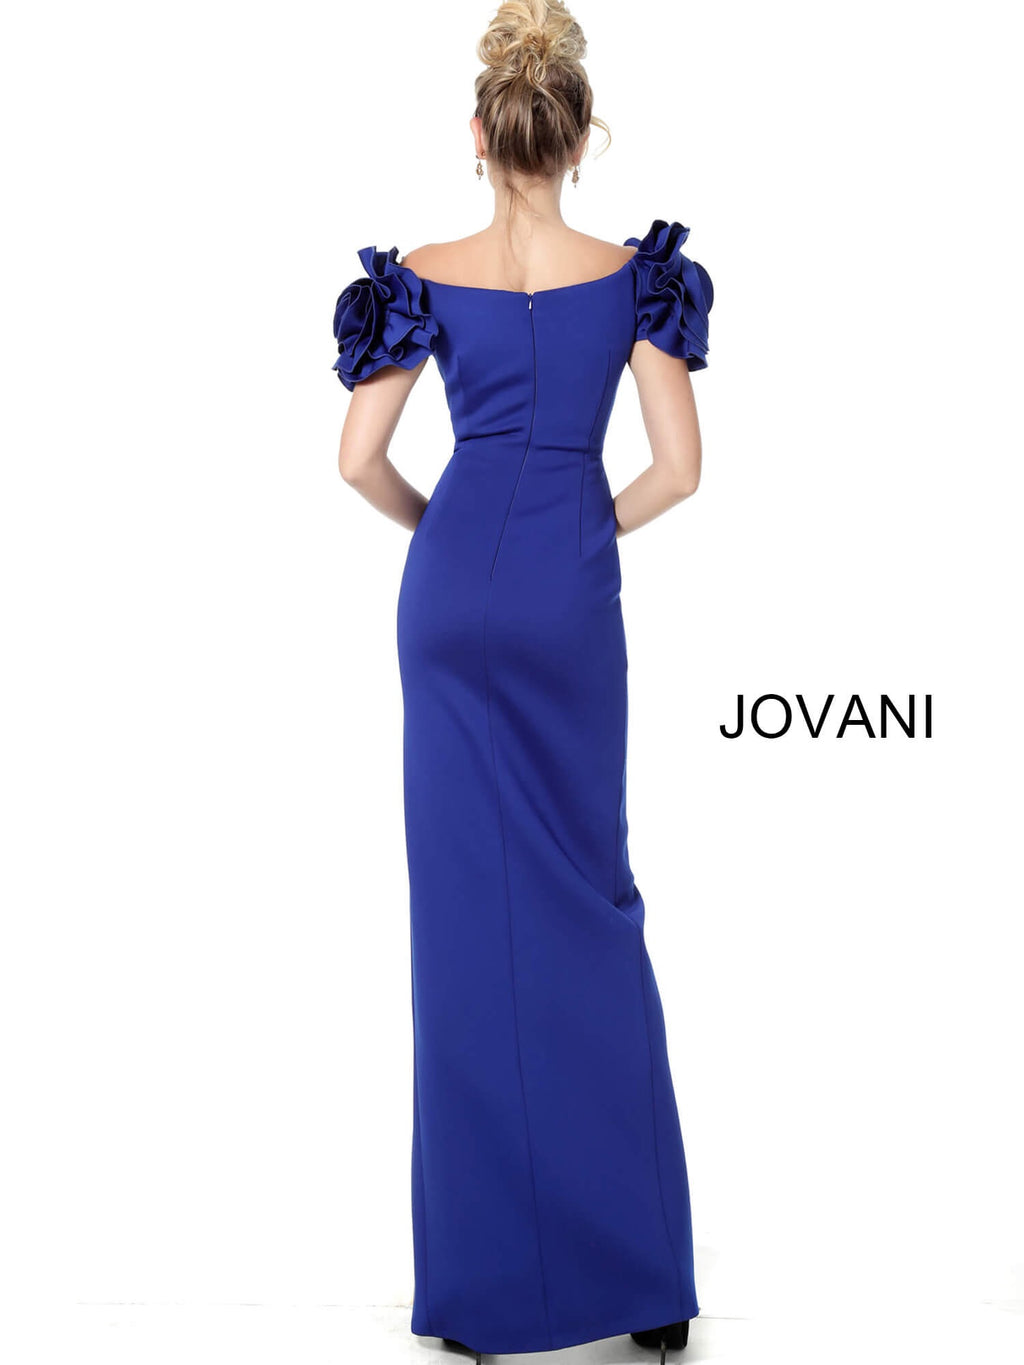 JOVANI 54913 High Slit Ruffle Sleeves Evening Dress - CYC Boutique